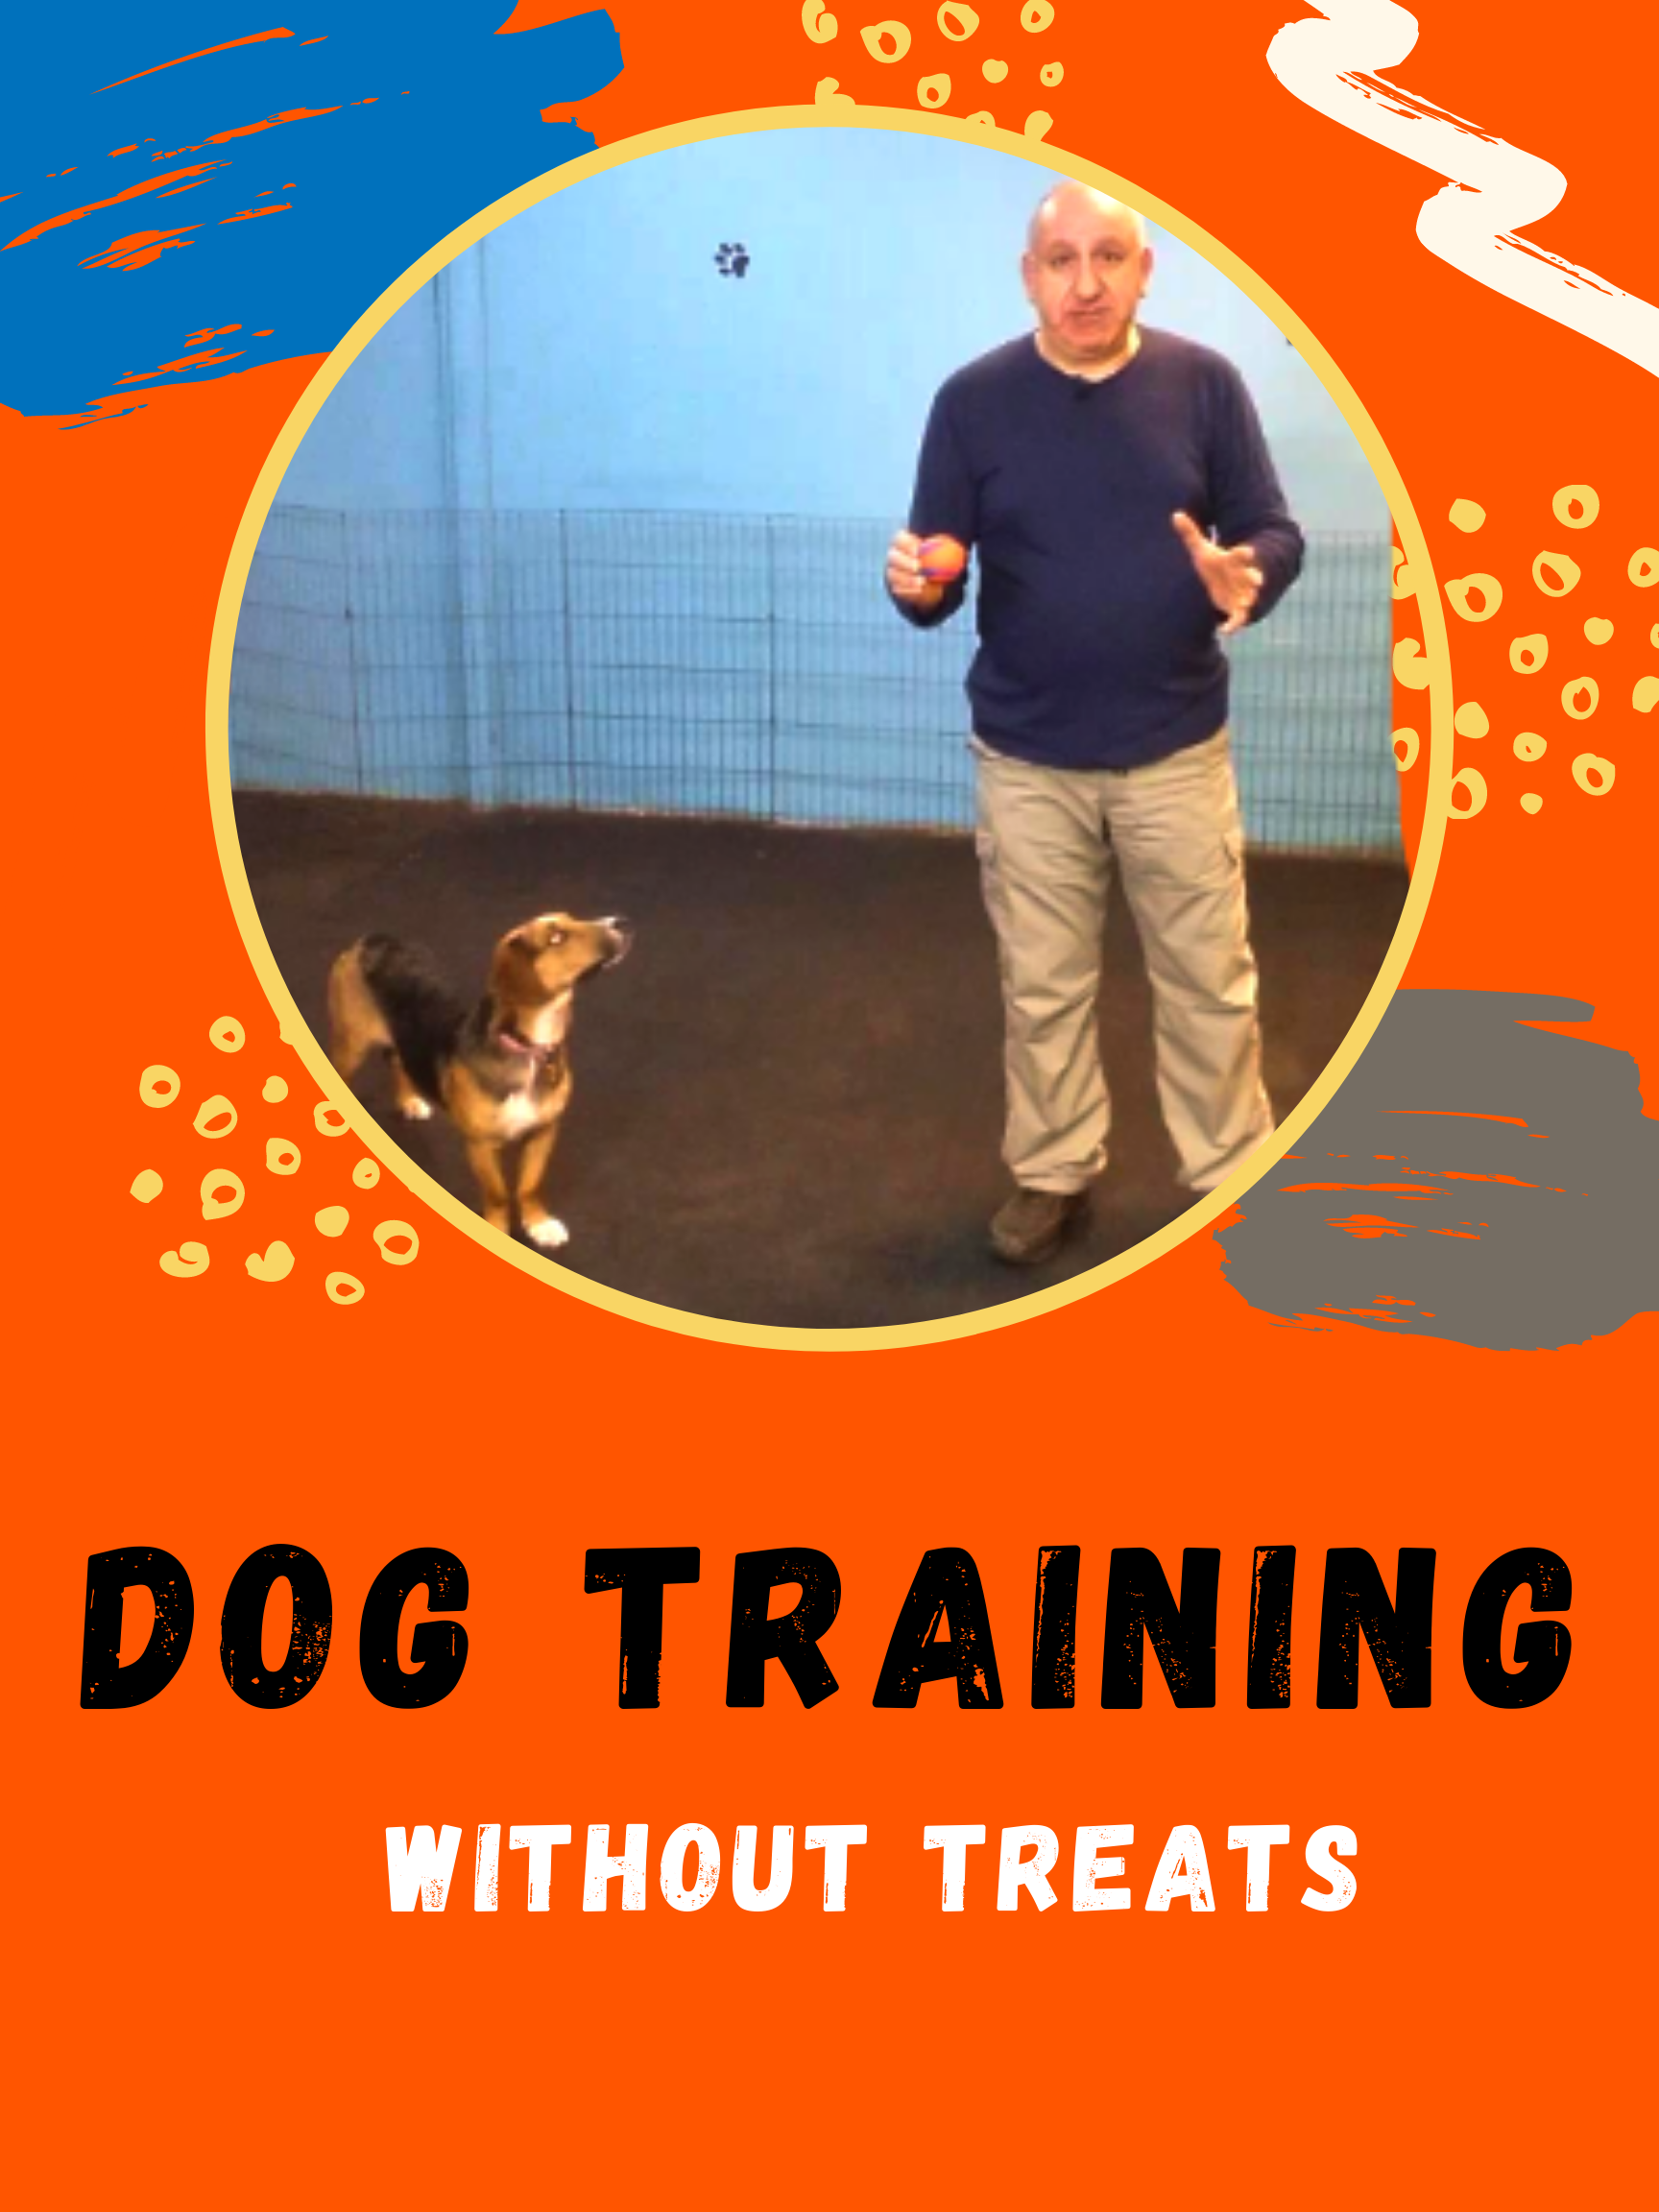 Learn Dog Training Method Without Treats and Food